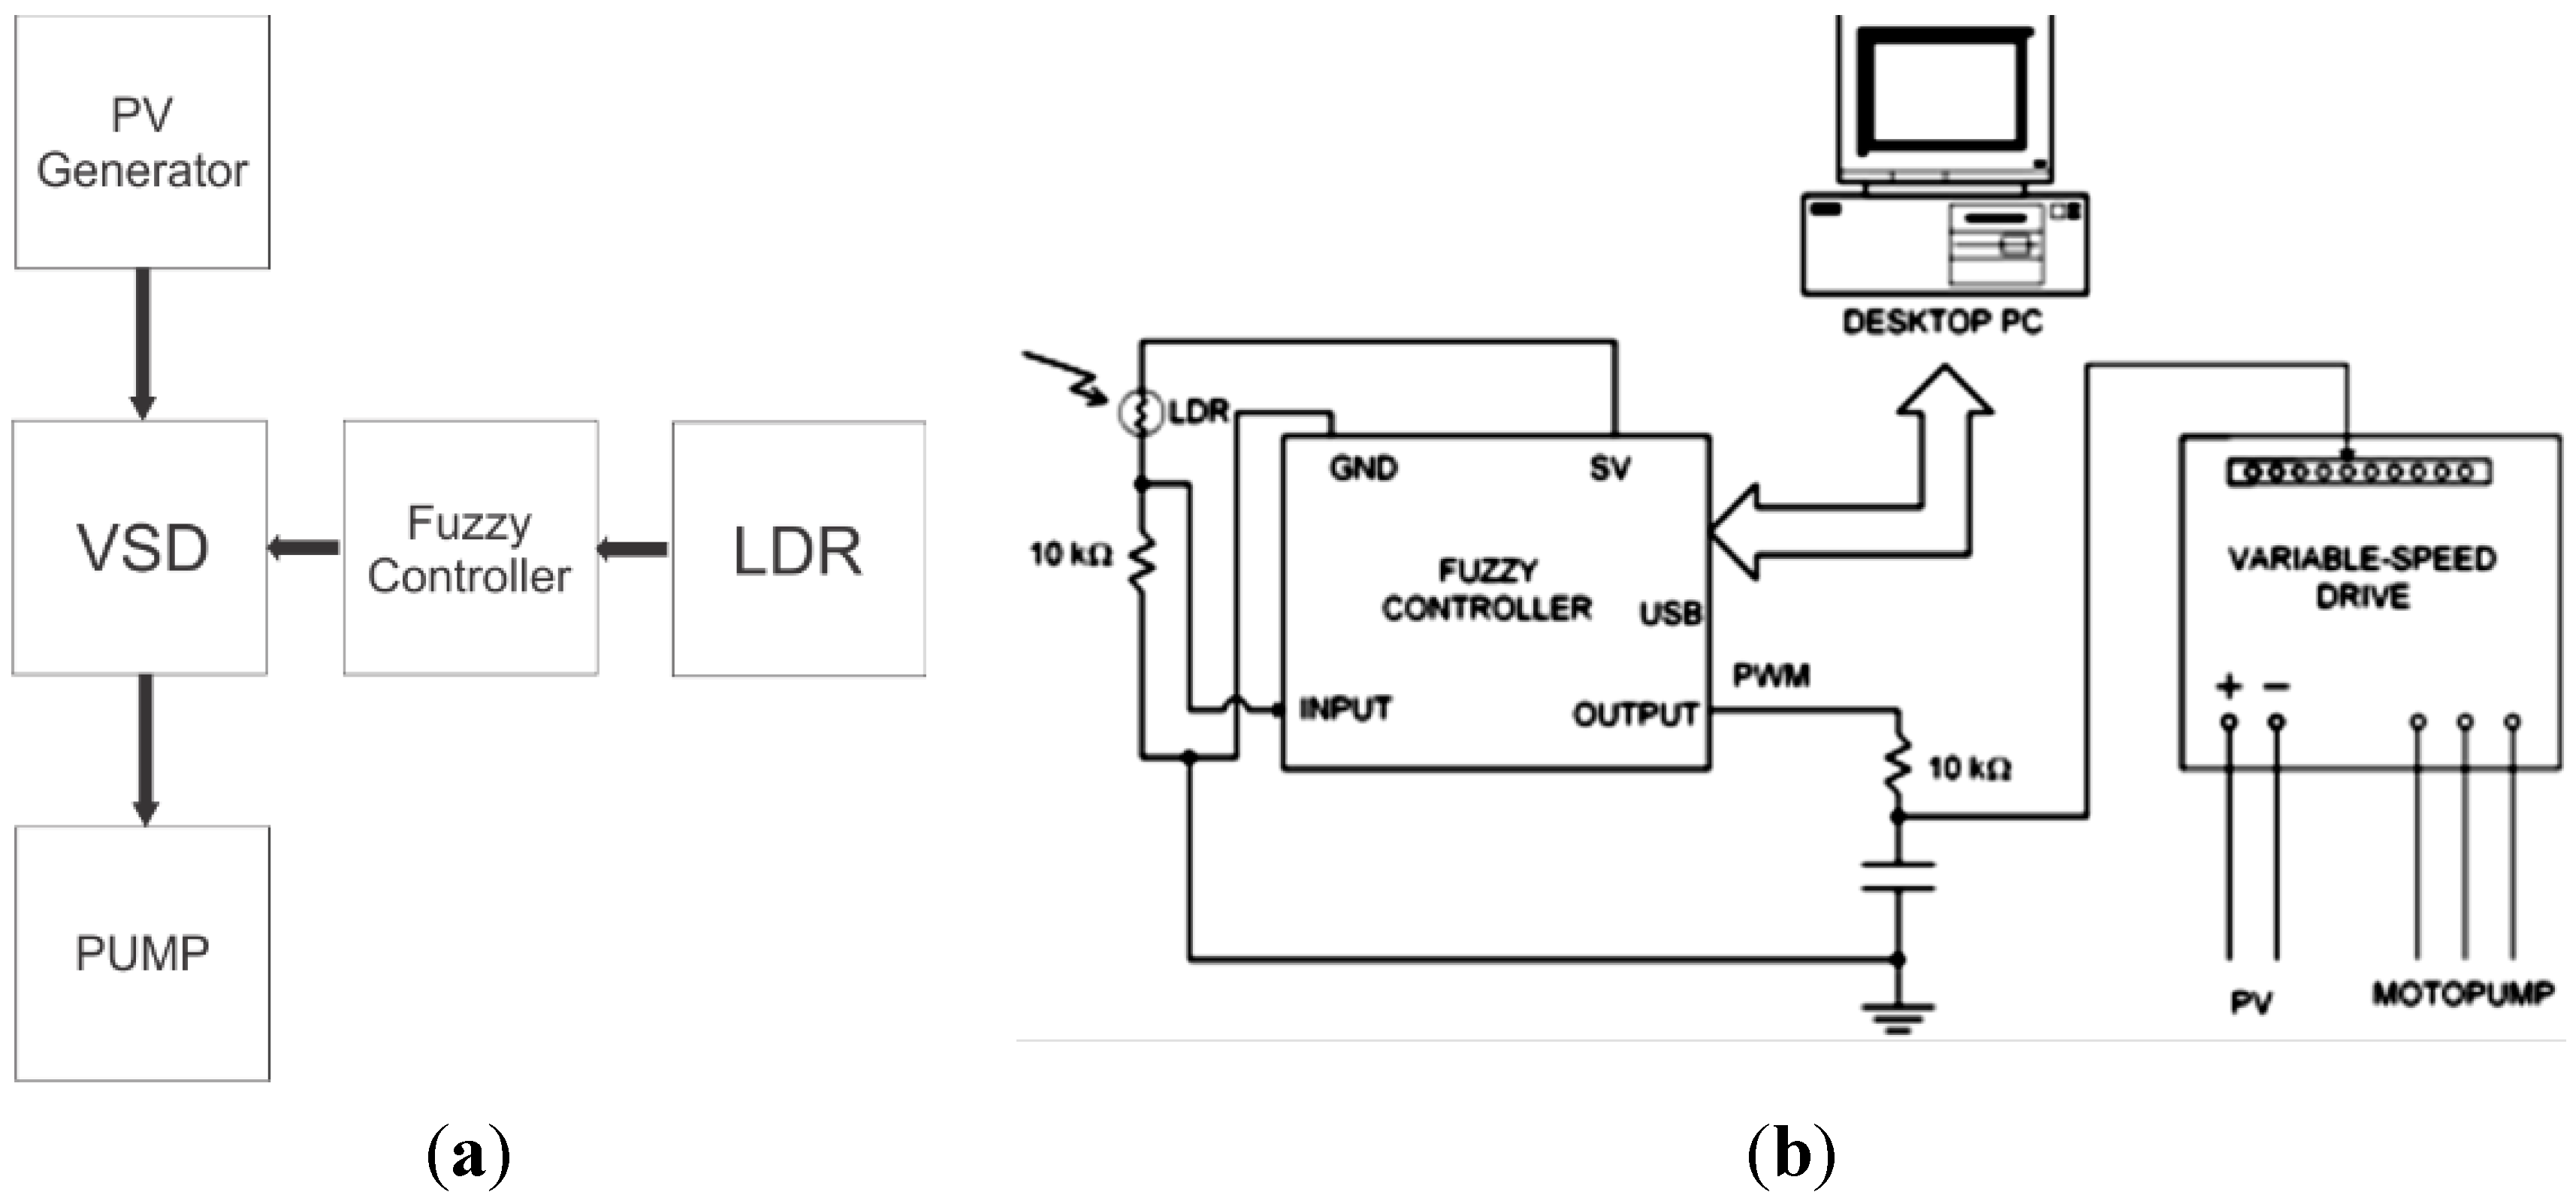 Sensors Free Full Text Using Ldr As Sensing Element For An Experiment With And Arduino Build Circuit 15 24445 G001 1024